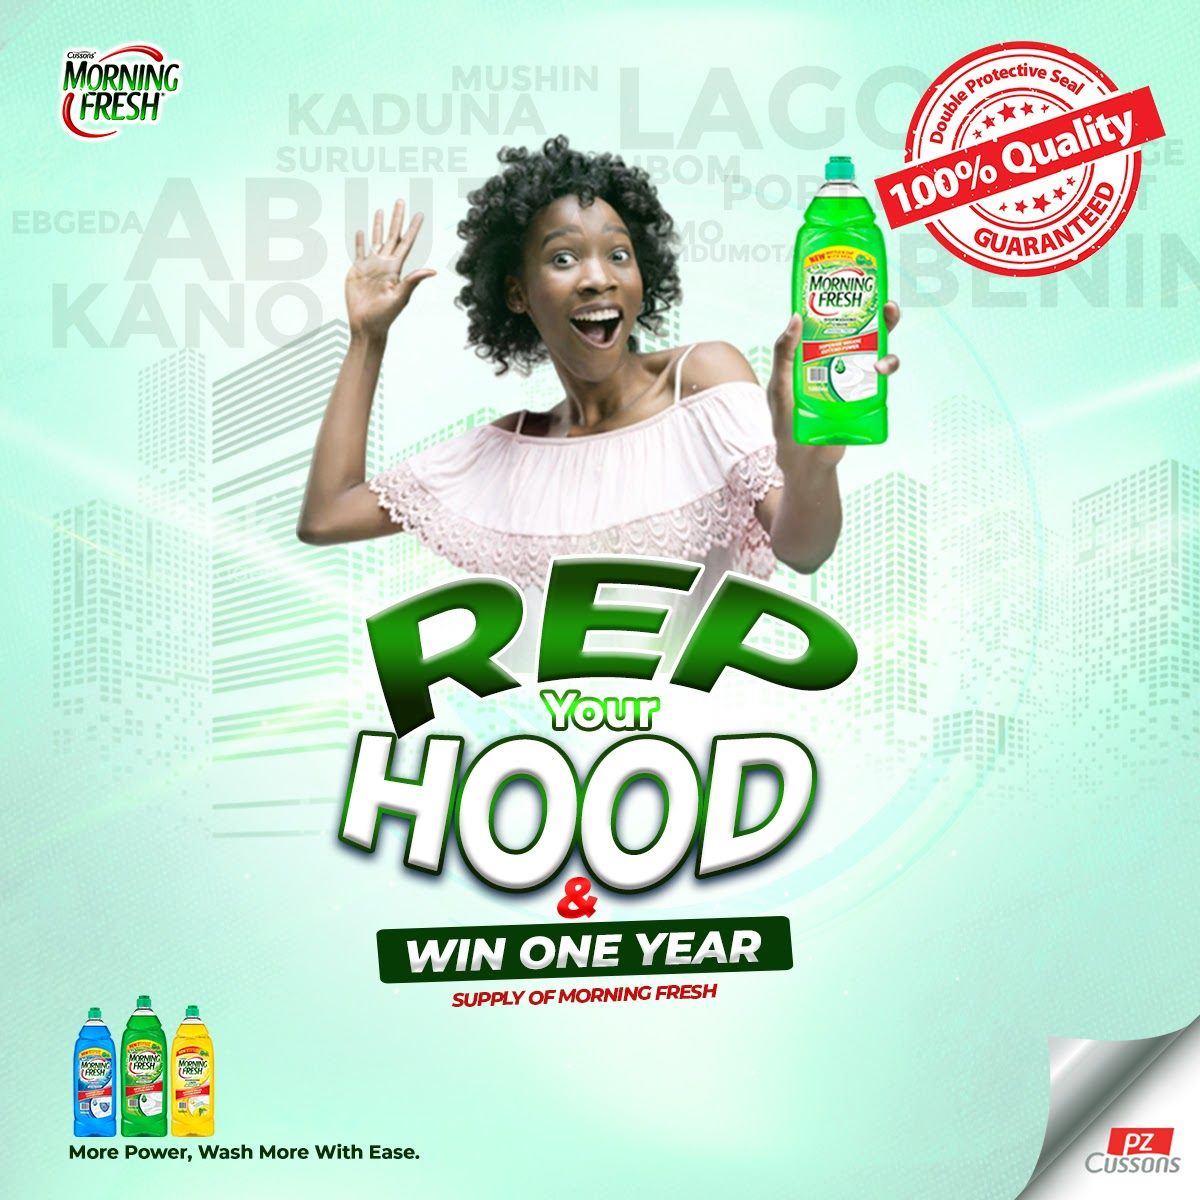 Morning Fresh Rep your Hood Challenge Continues…